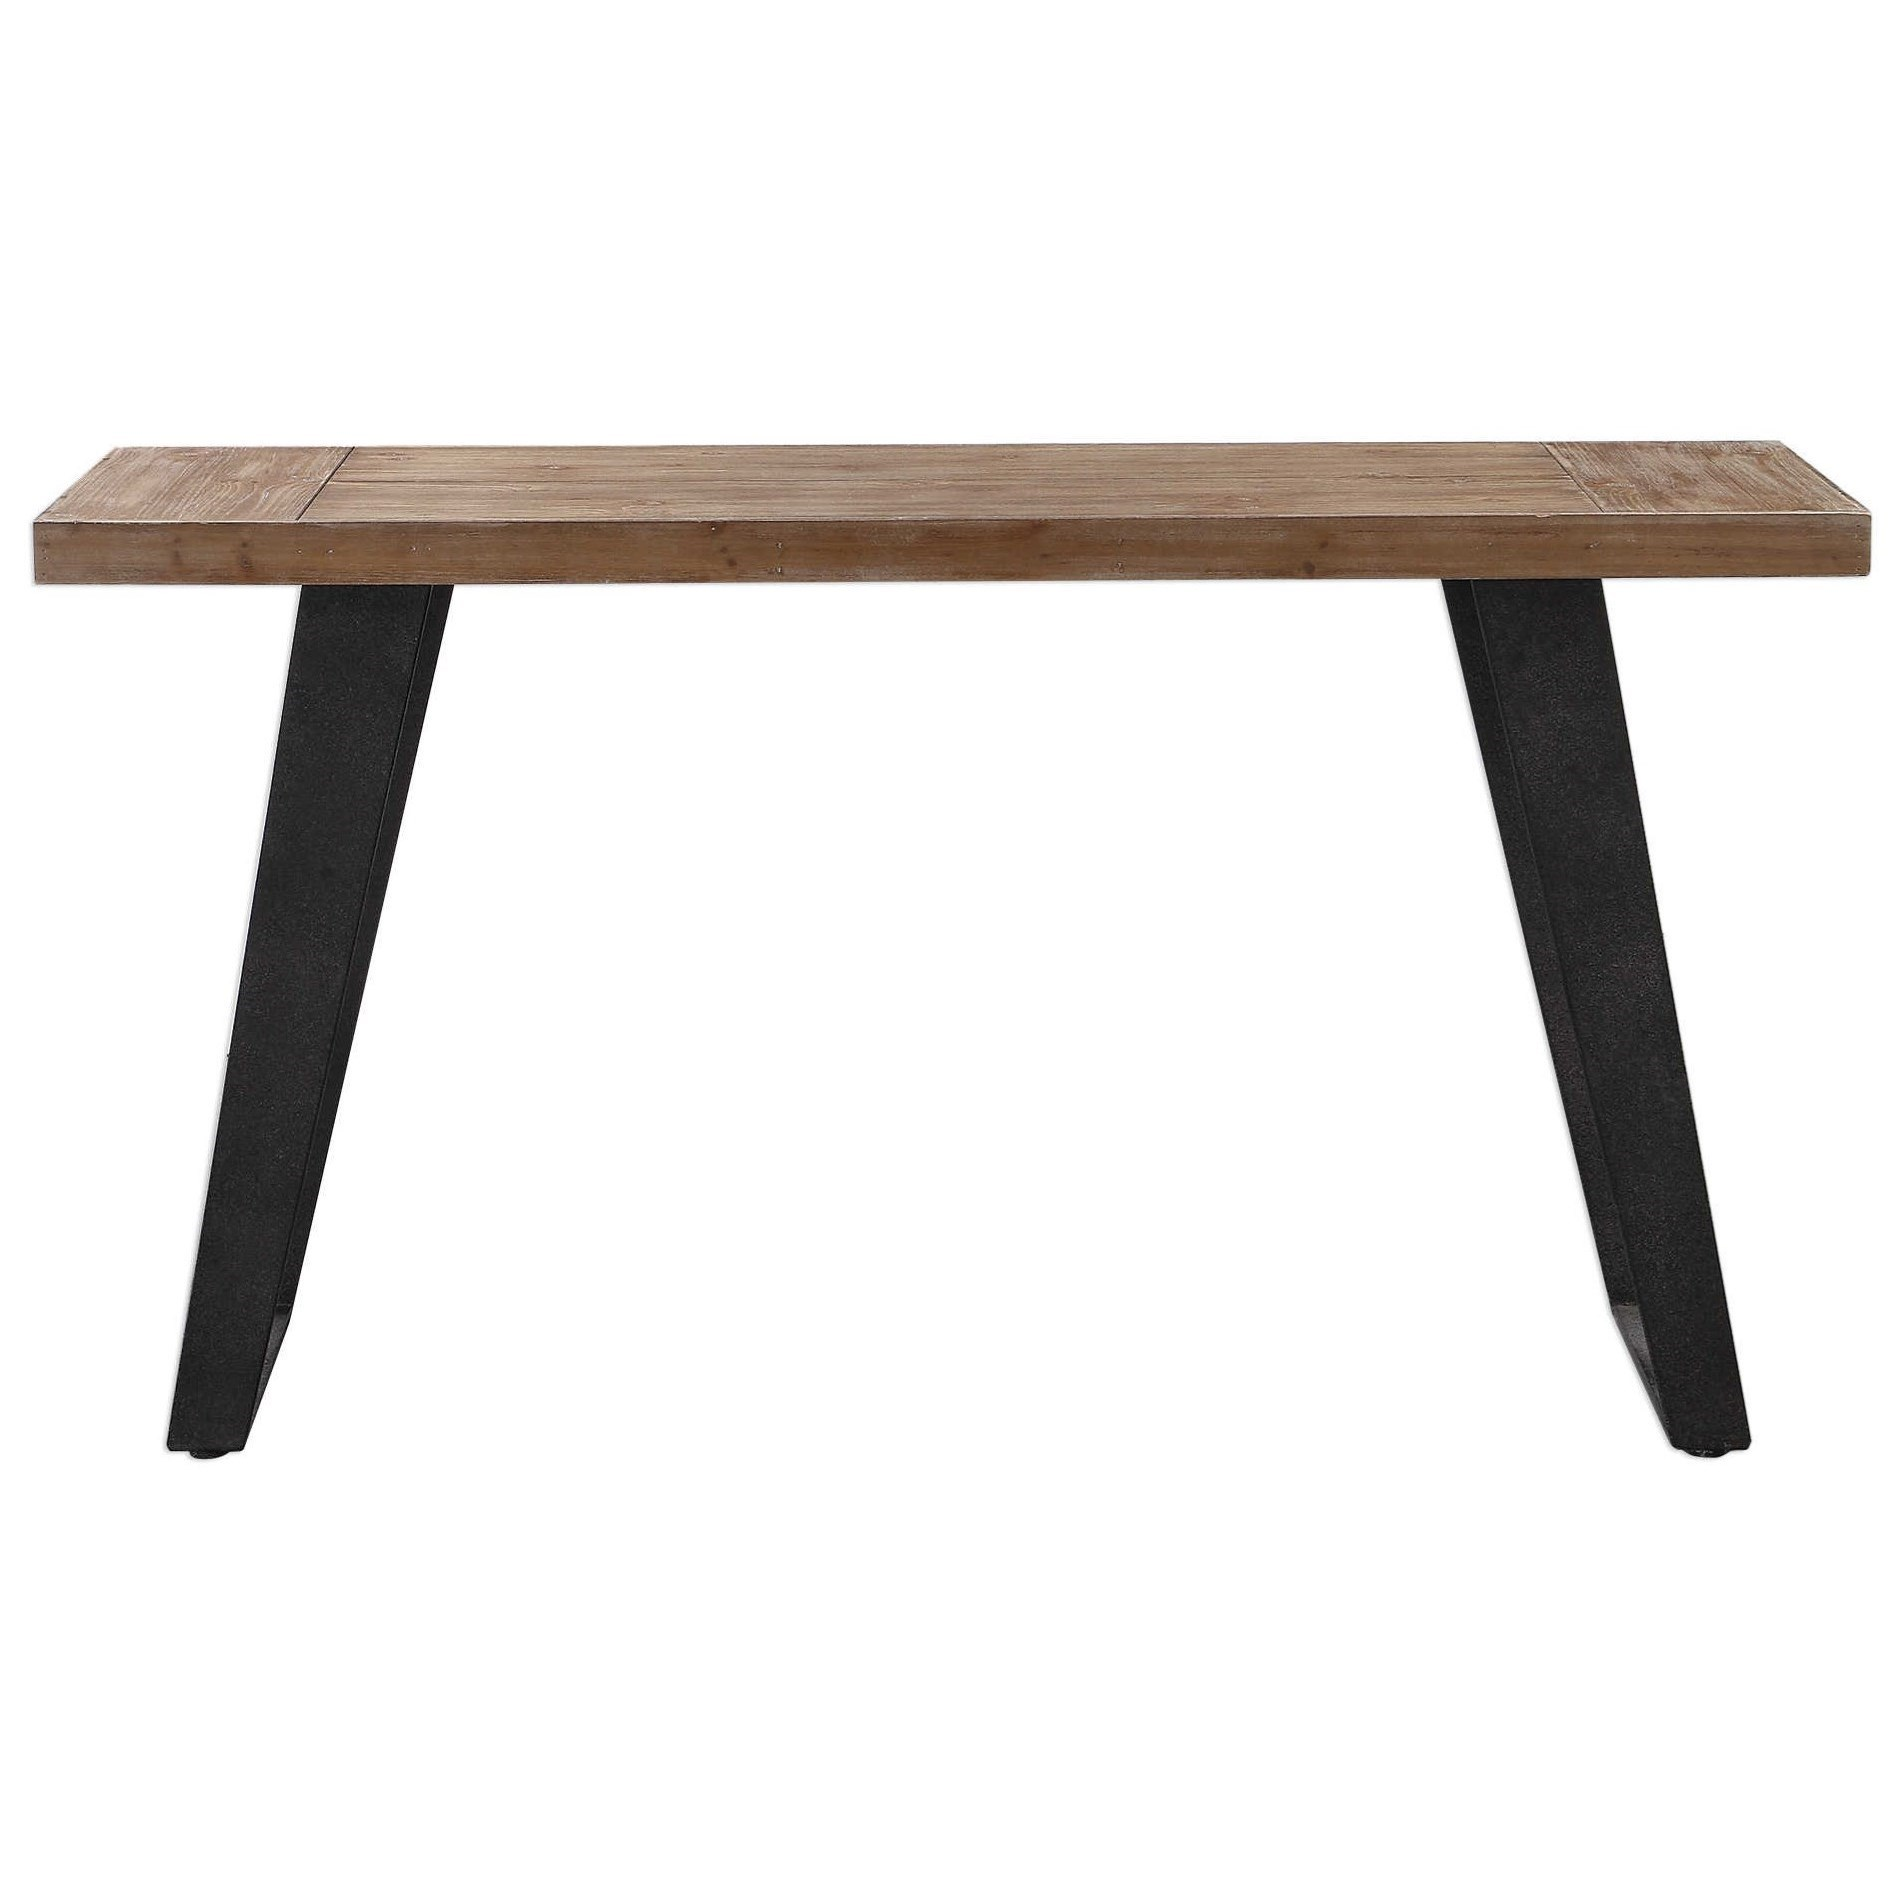 Accent Furniture - Occasional Tables Freddy Weathered Console Table by Uttermost at Upper Room Home Furnishings